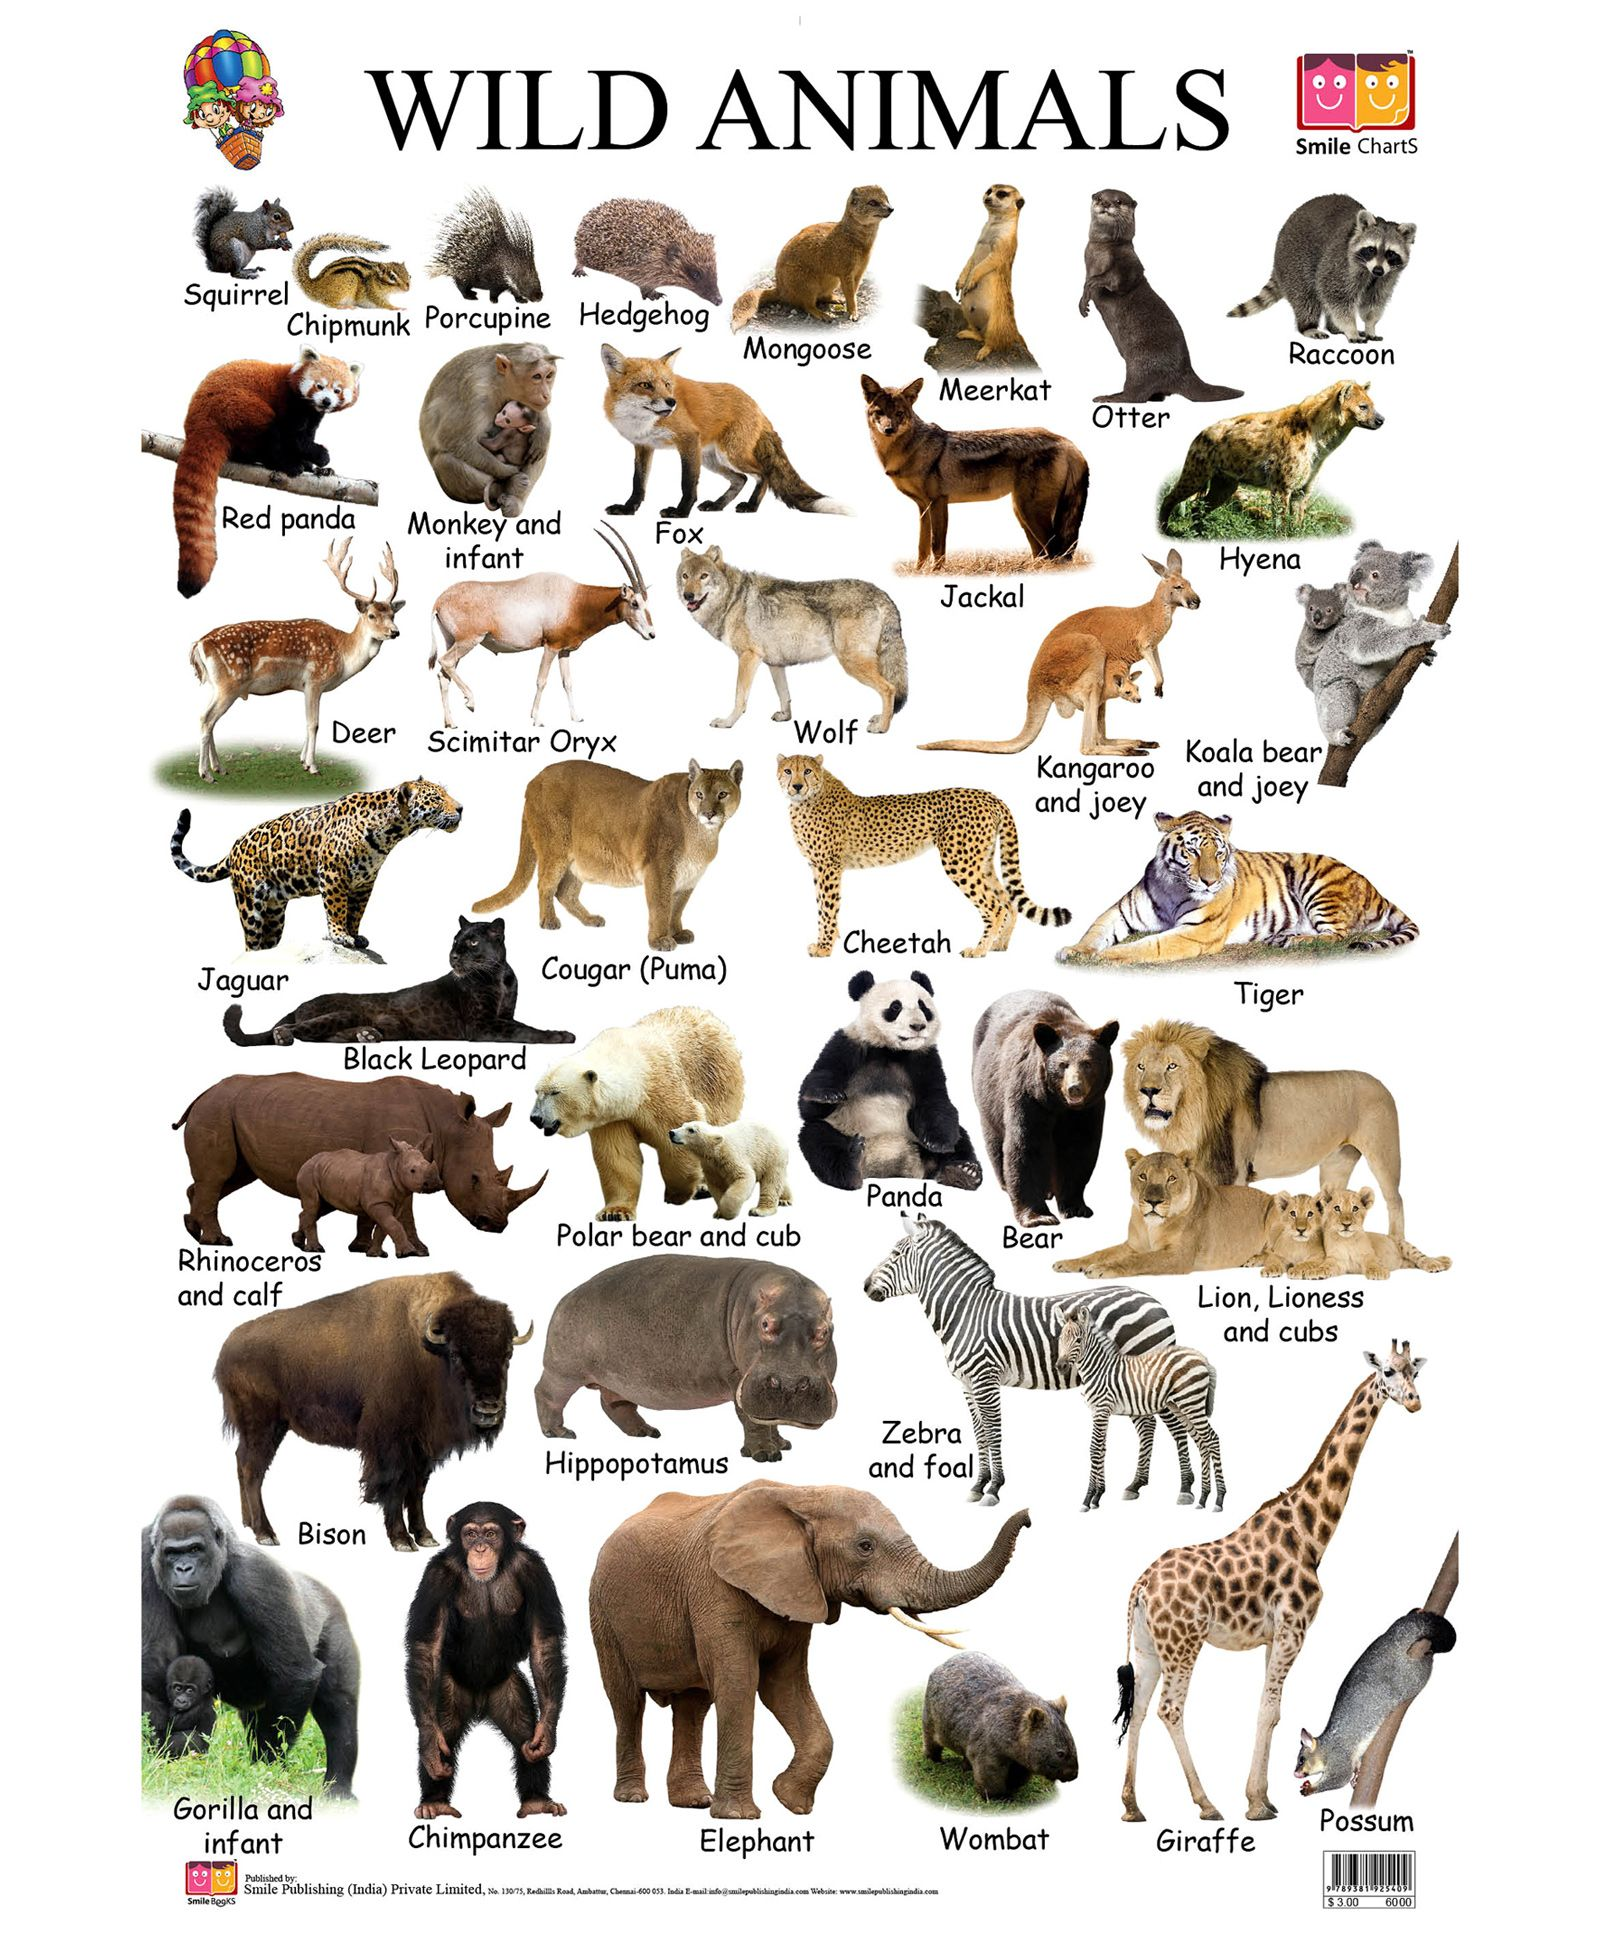 Wild Animal Images With Name